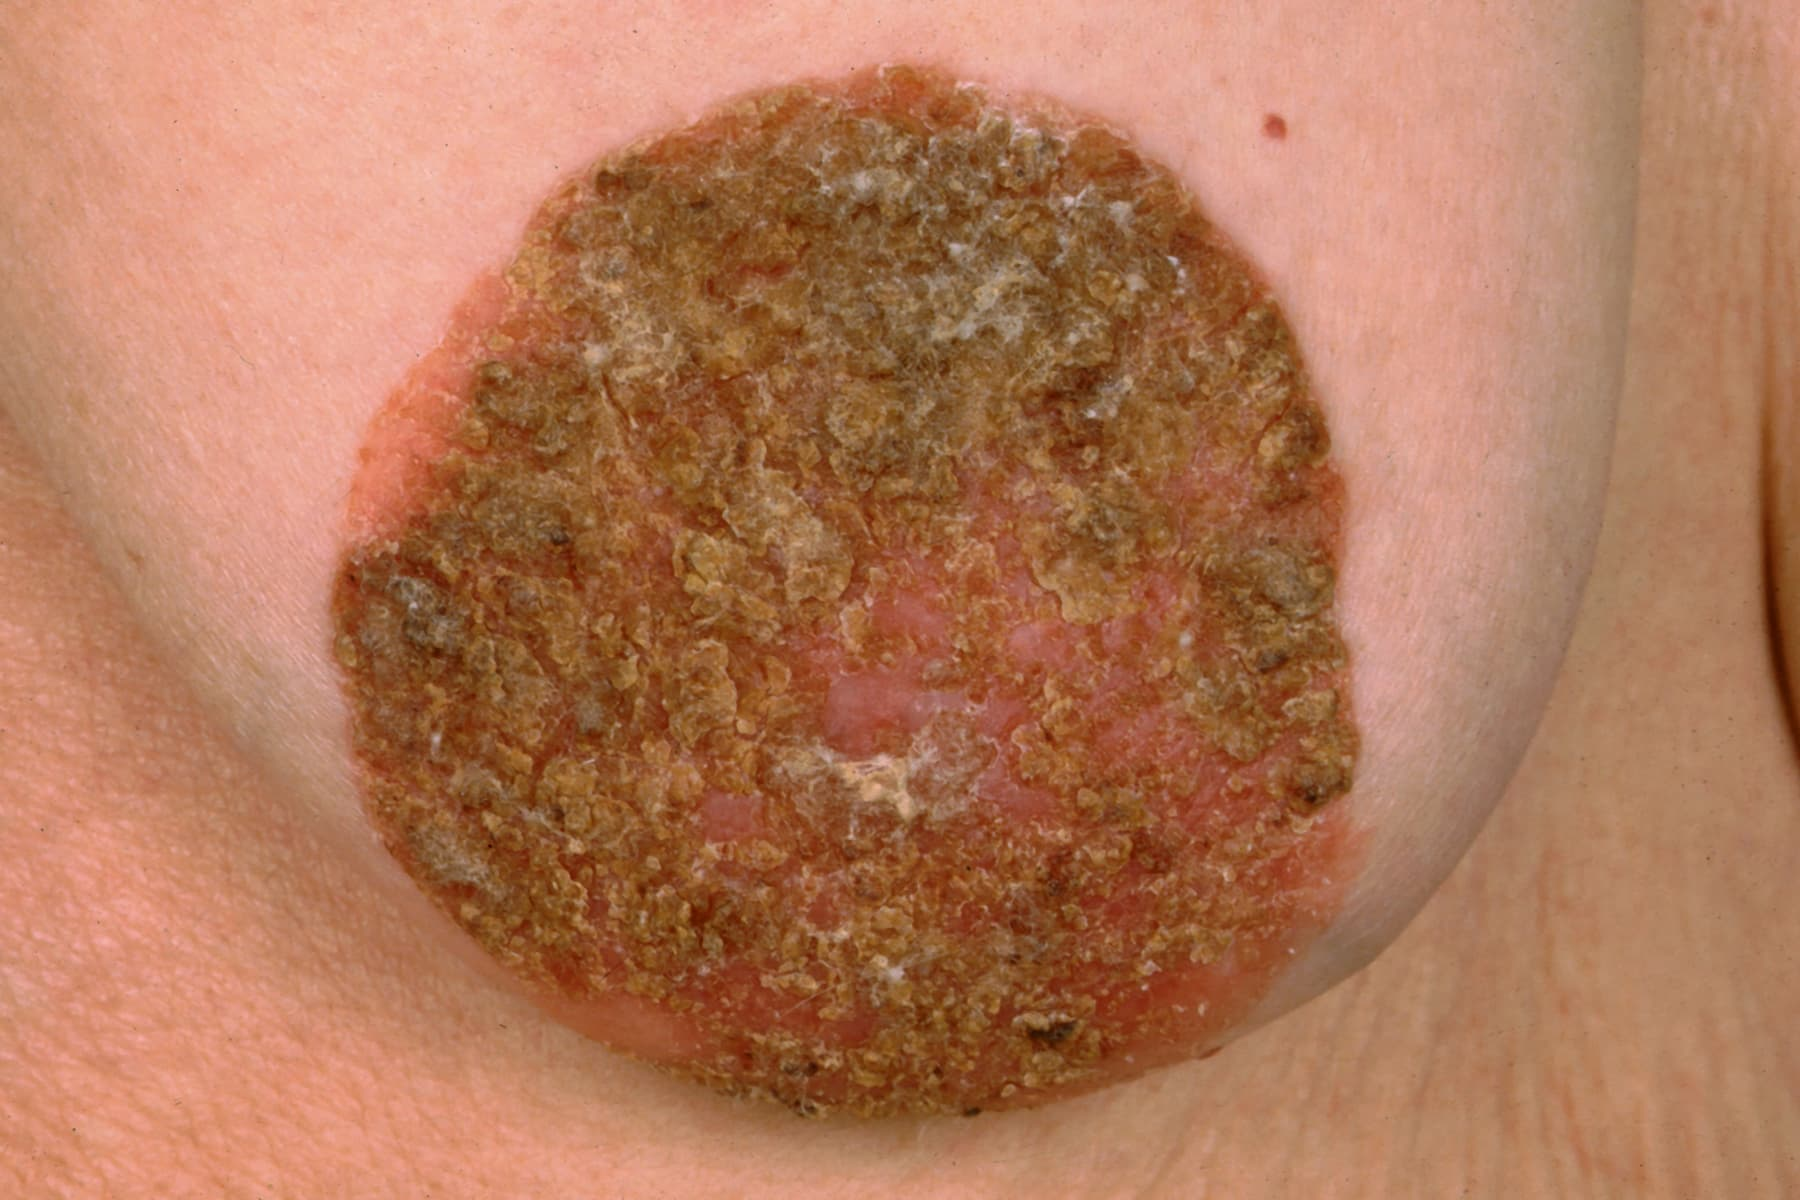 intraductal papilloma itching